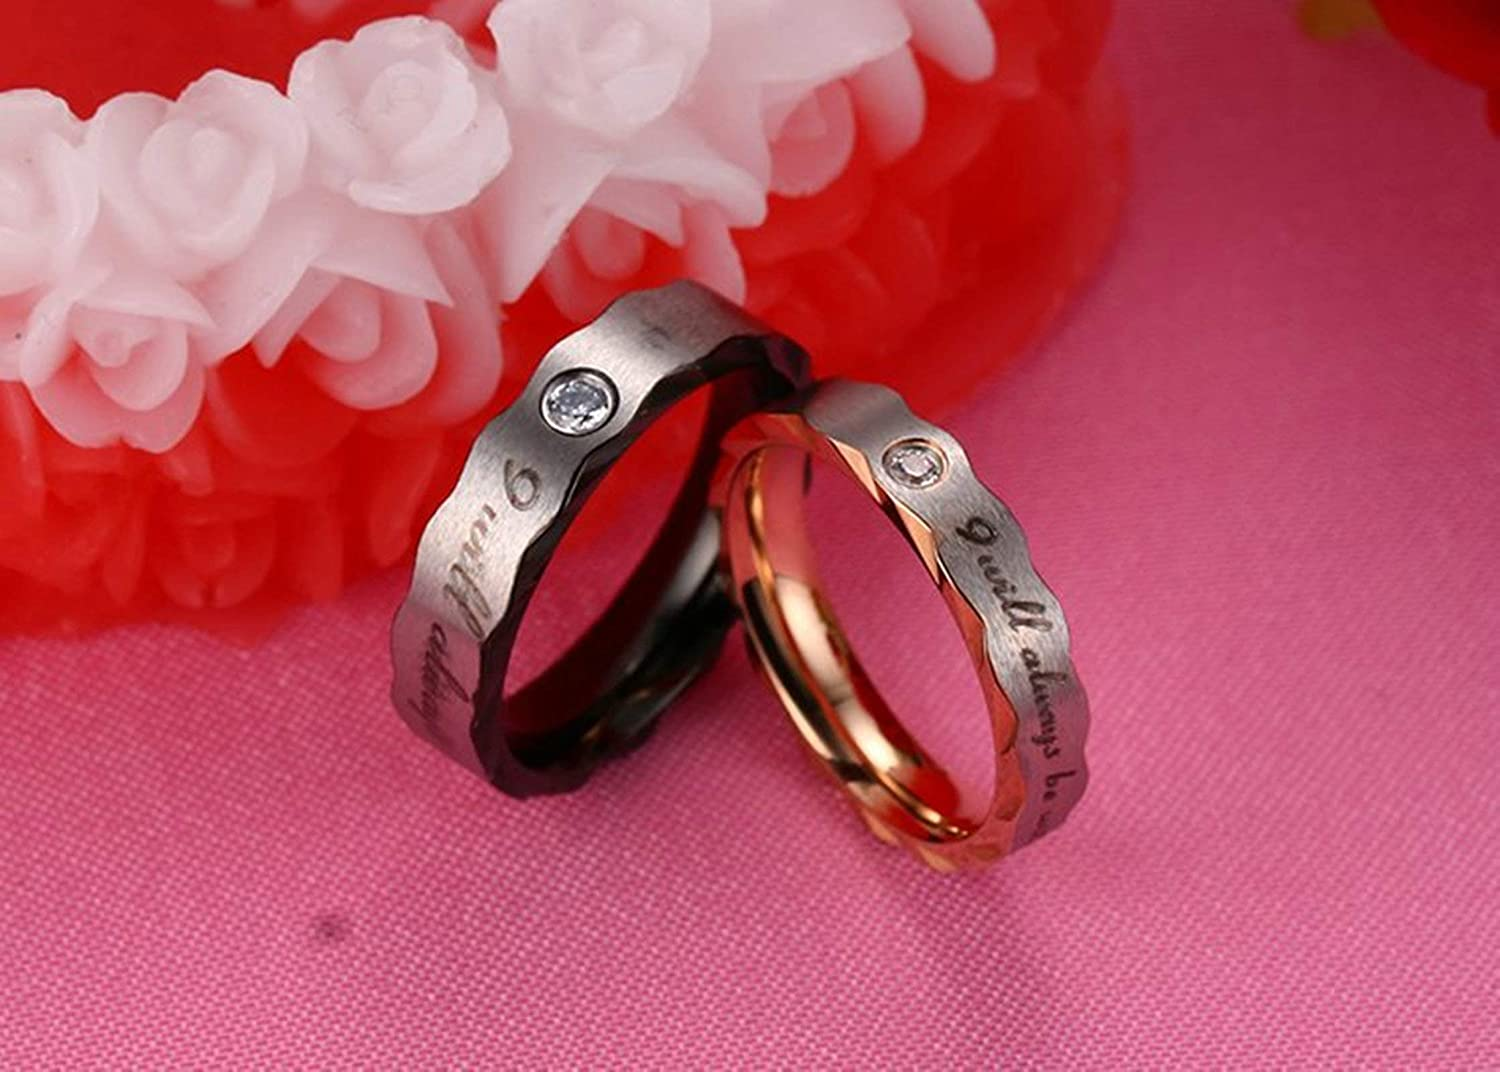 AMDXD Jewelry Couple Ring Men I Will Always be with You Cubic Zirconia Black Couple Rings Stainless Steel 5 MM,Single Sale